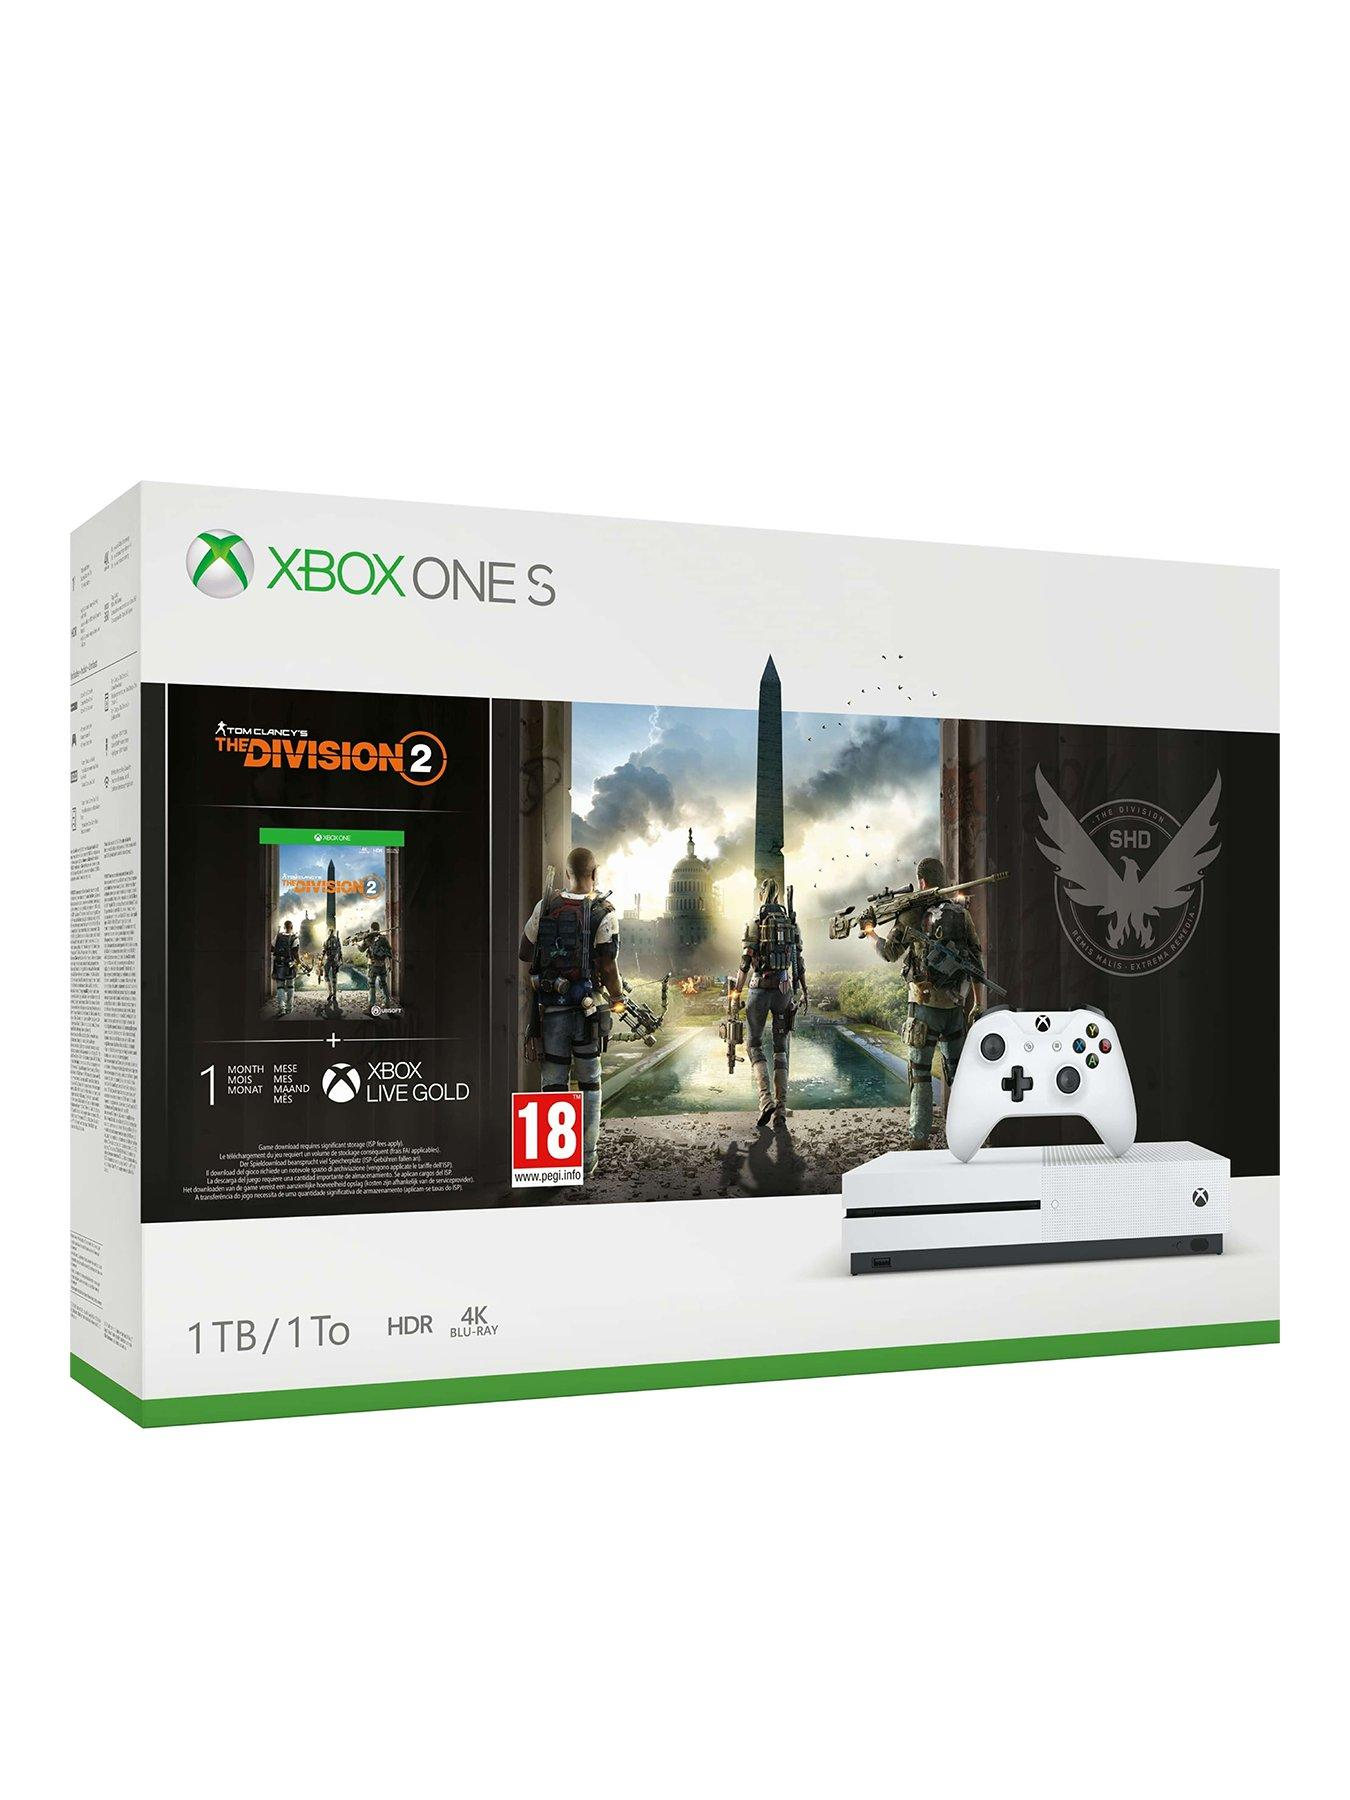 Faceplates, Decals & Stickers Professional Sale Liverpool F.c Xbox One Skin Bundle Reputation First Video Games & Consoles